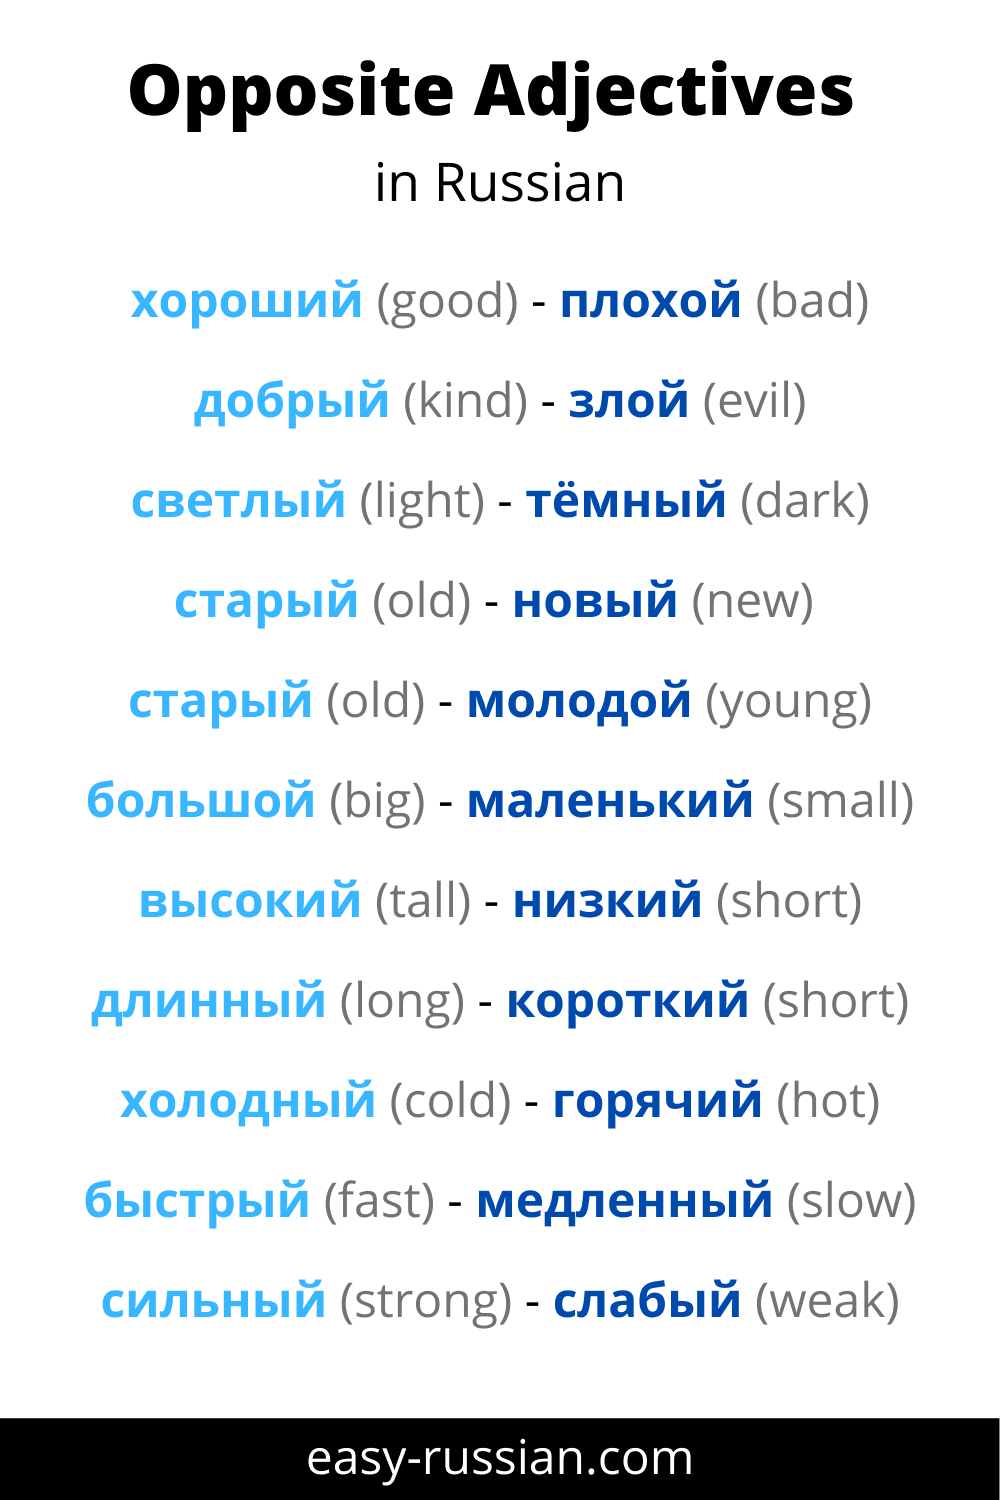 Opposite Adjectives in Russian